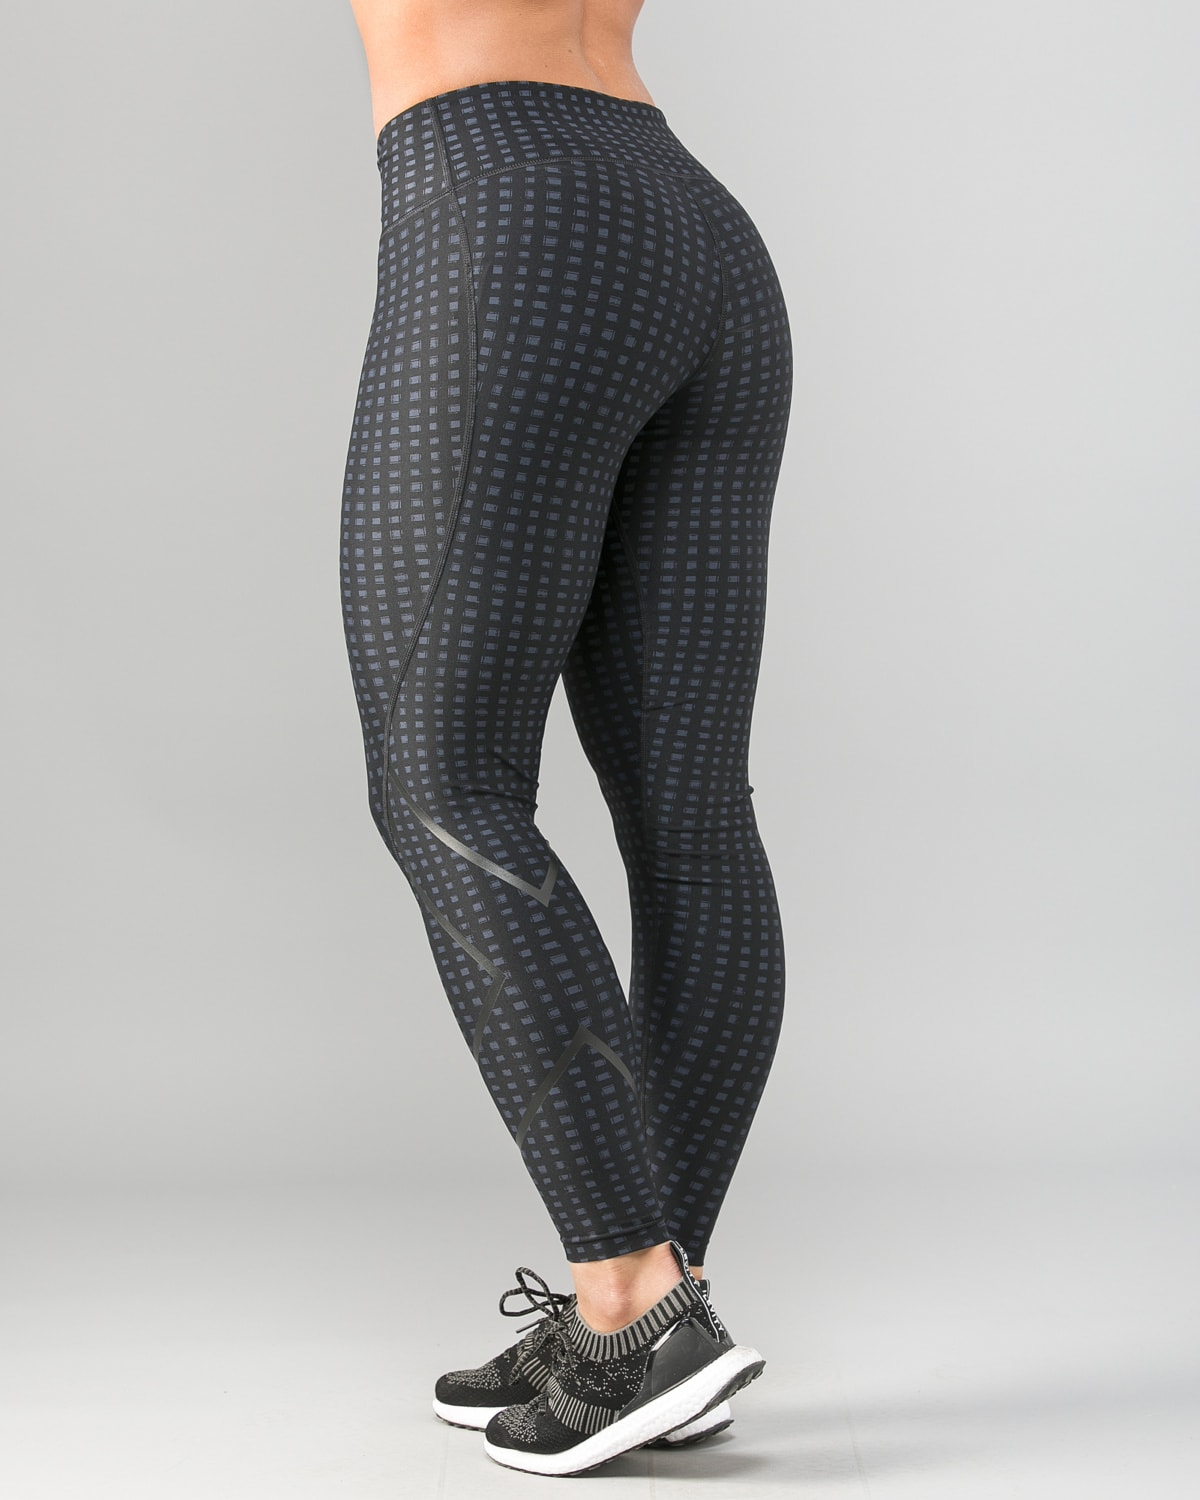 2XU-Print-Mid-Rise-Comp-Tights-W-Outer-Space-Urban-Grid-Nero1